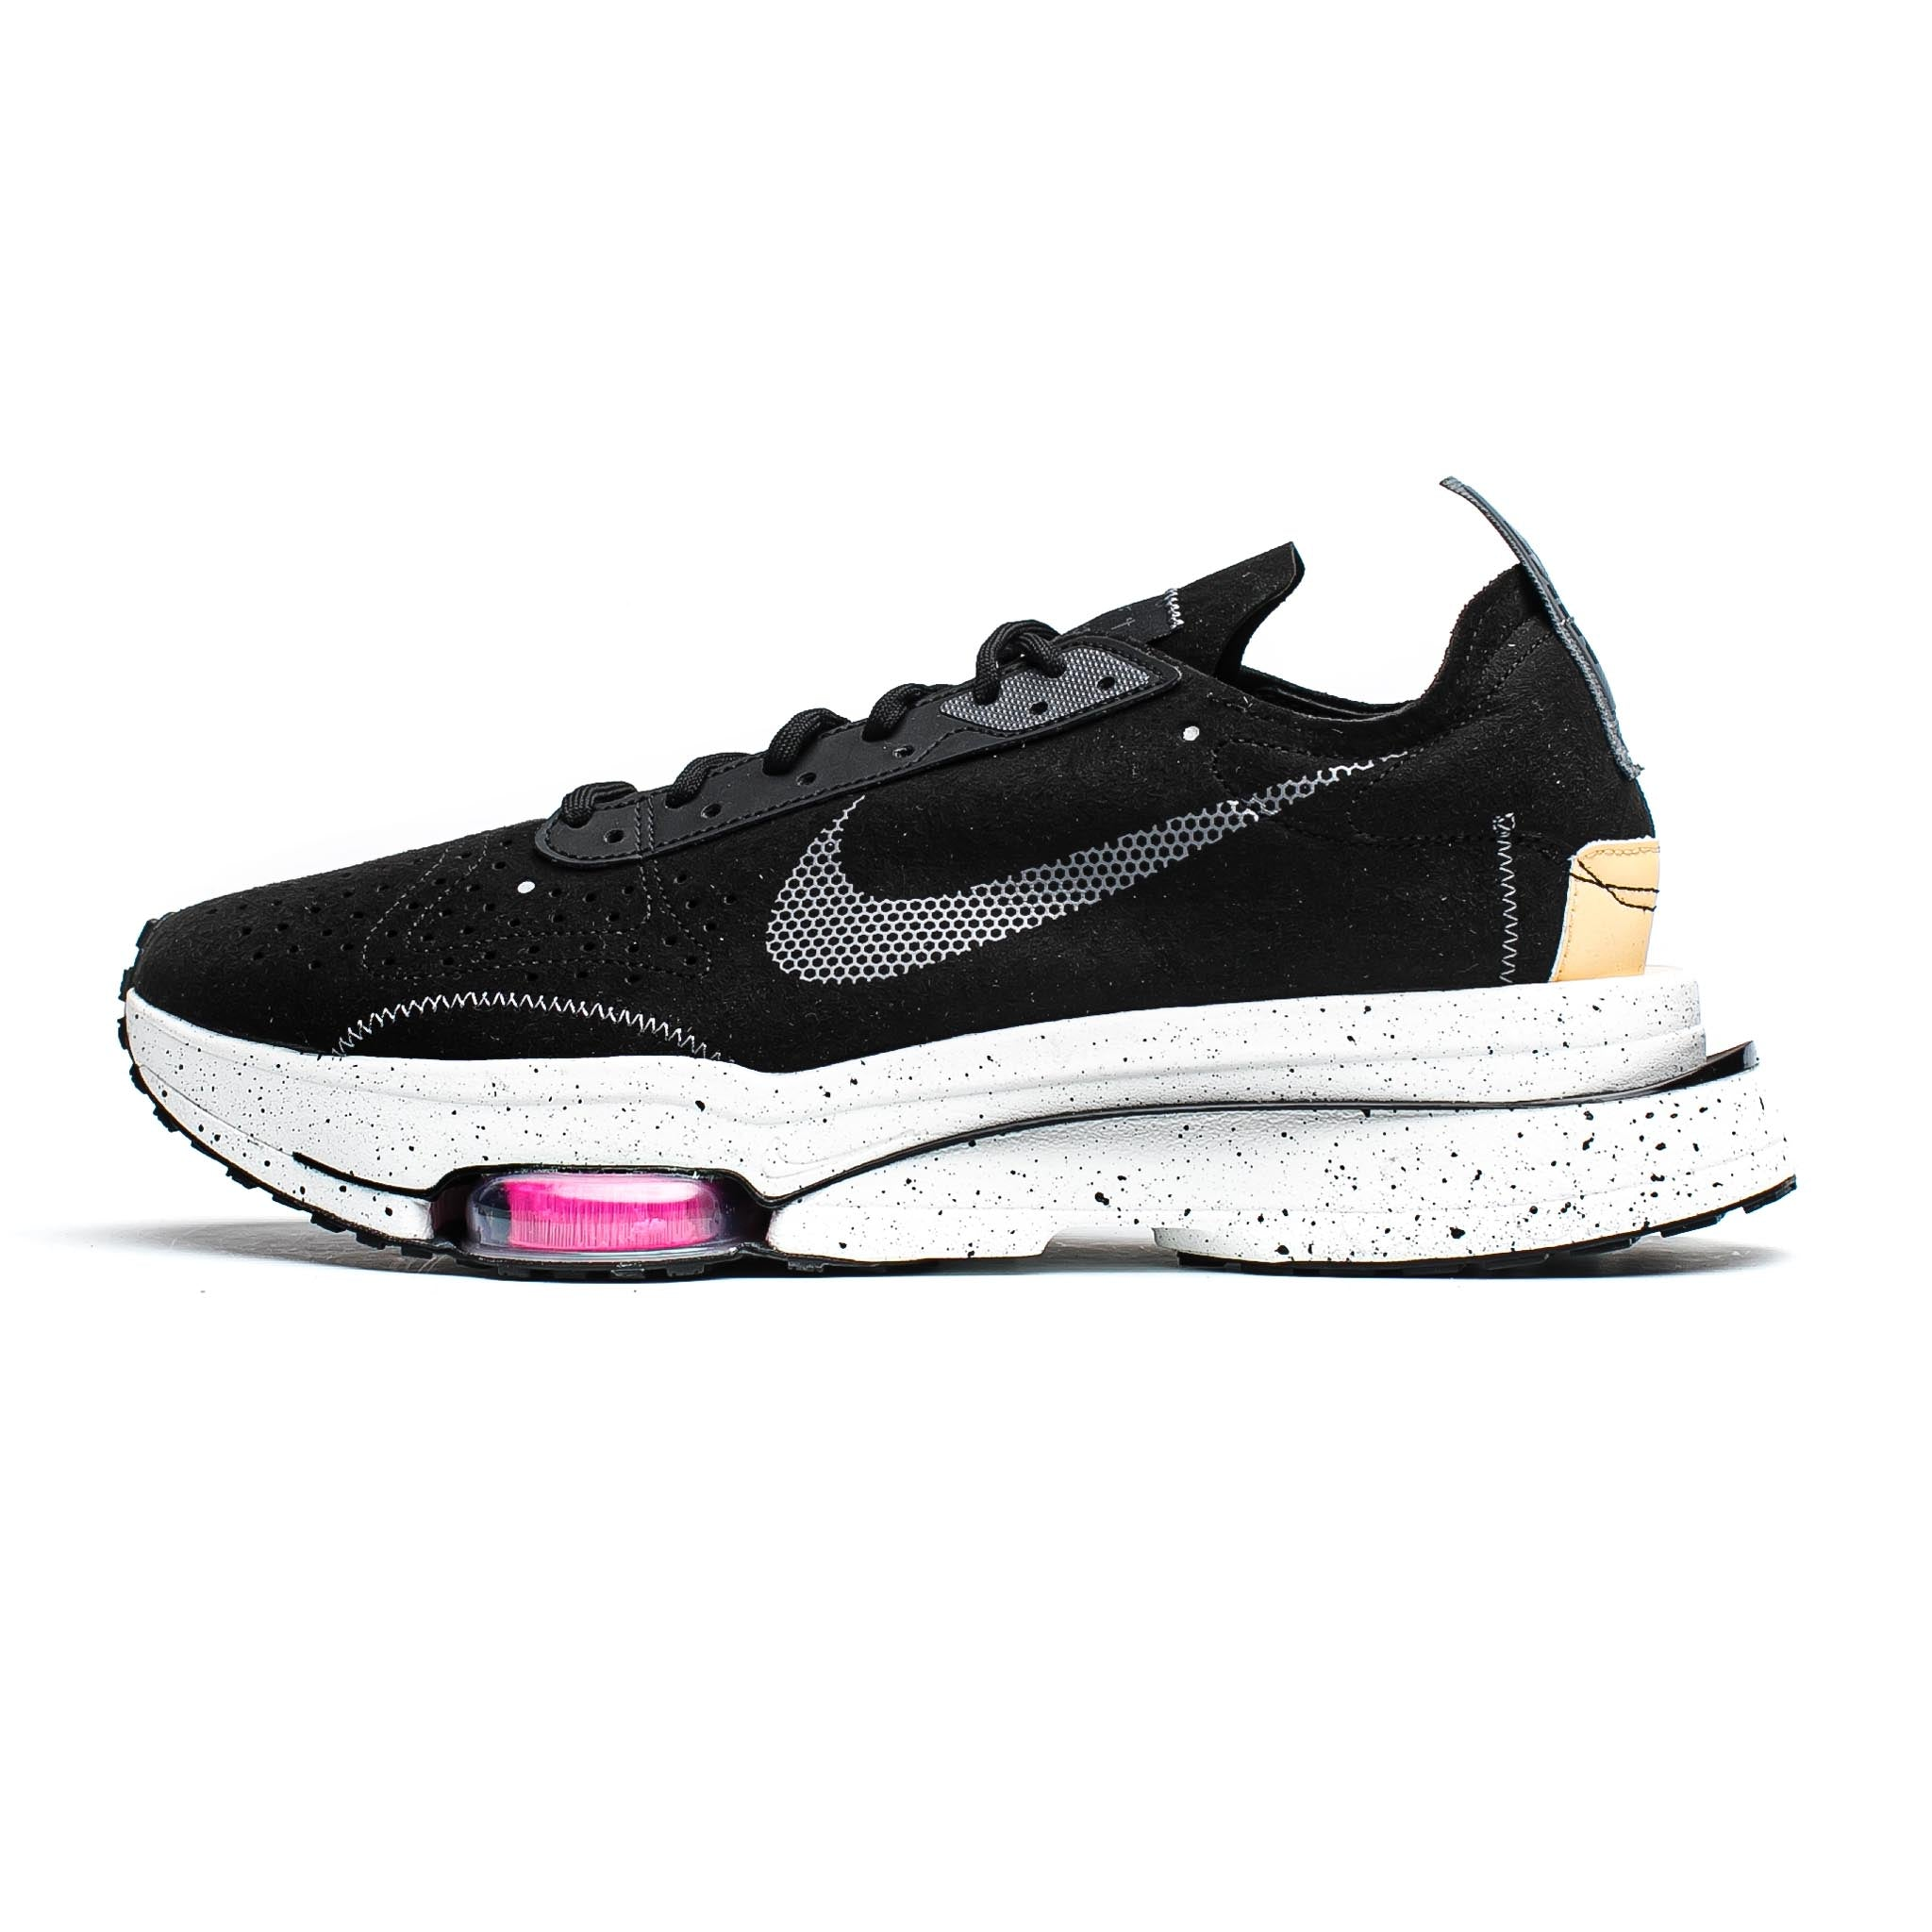 Nike Air Zoom-Type N.354 'Black/Pink'